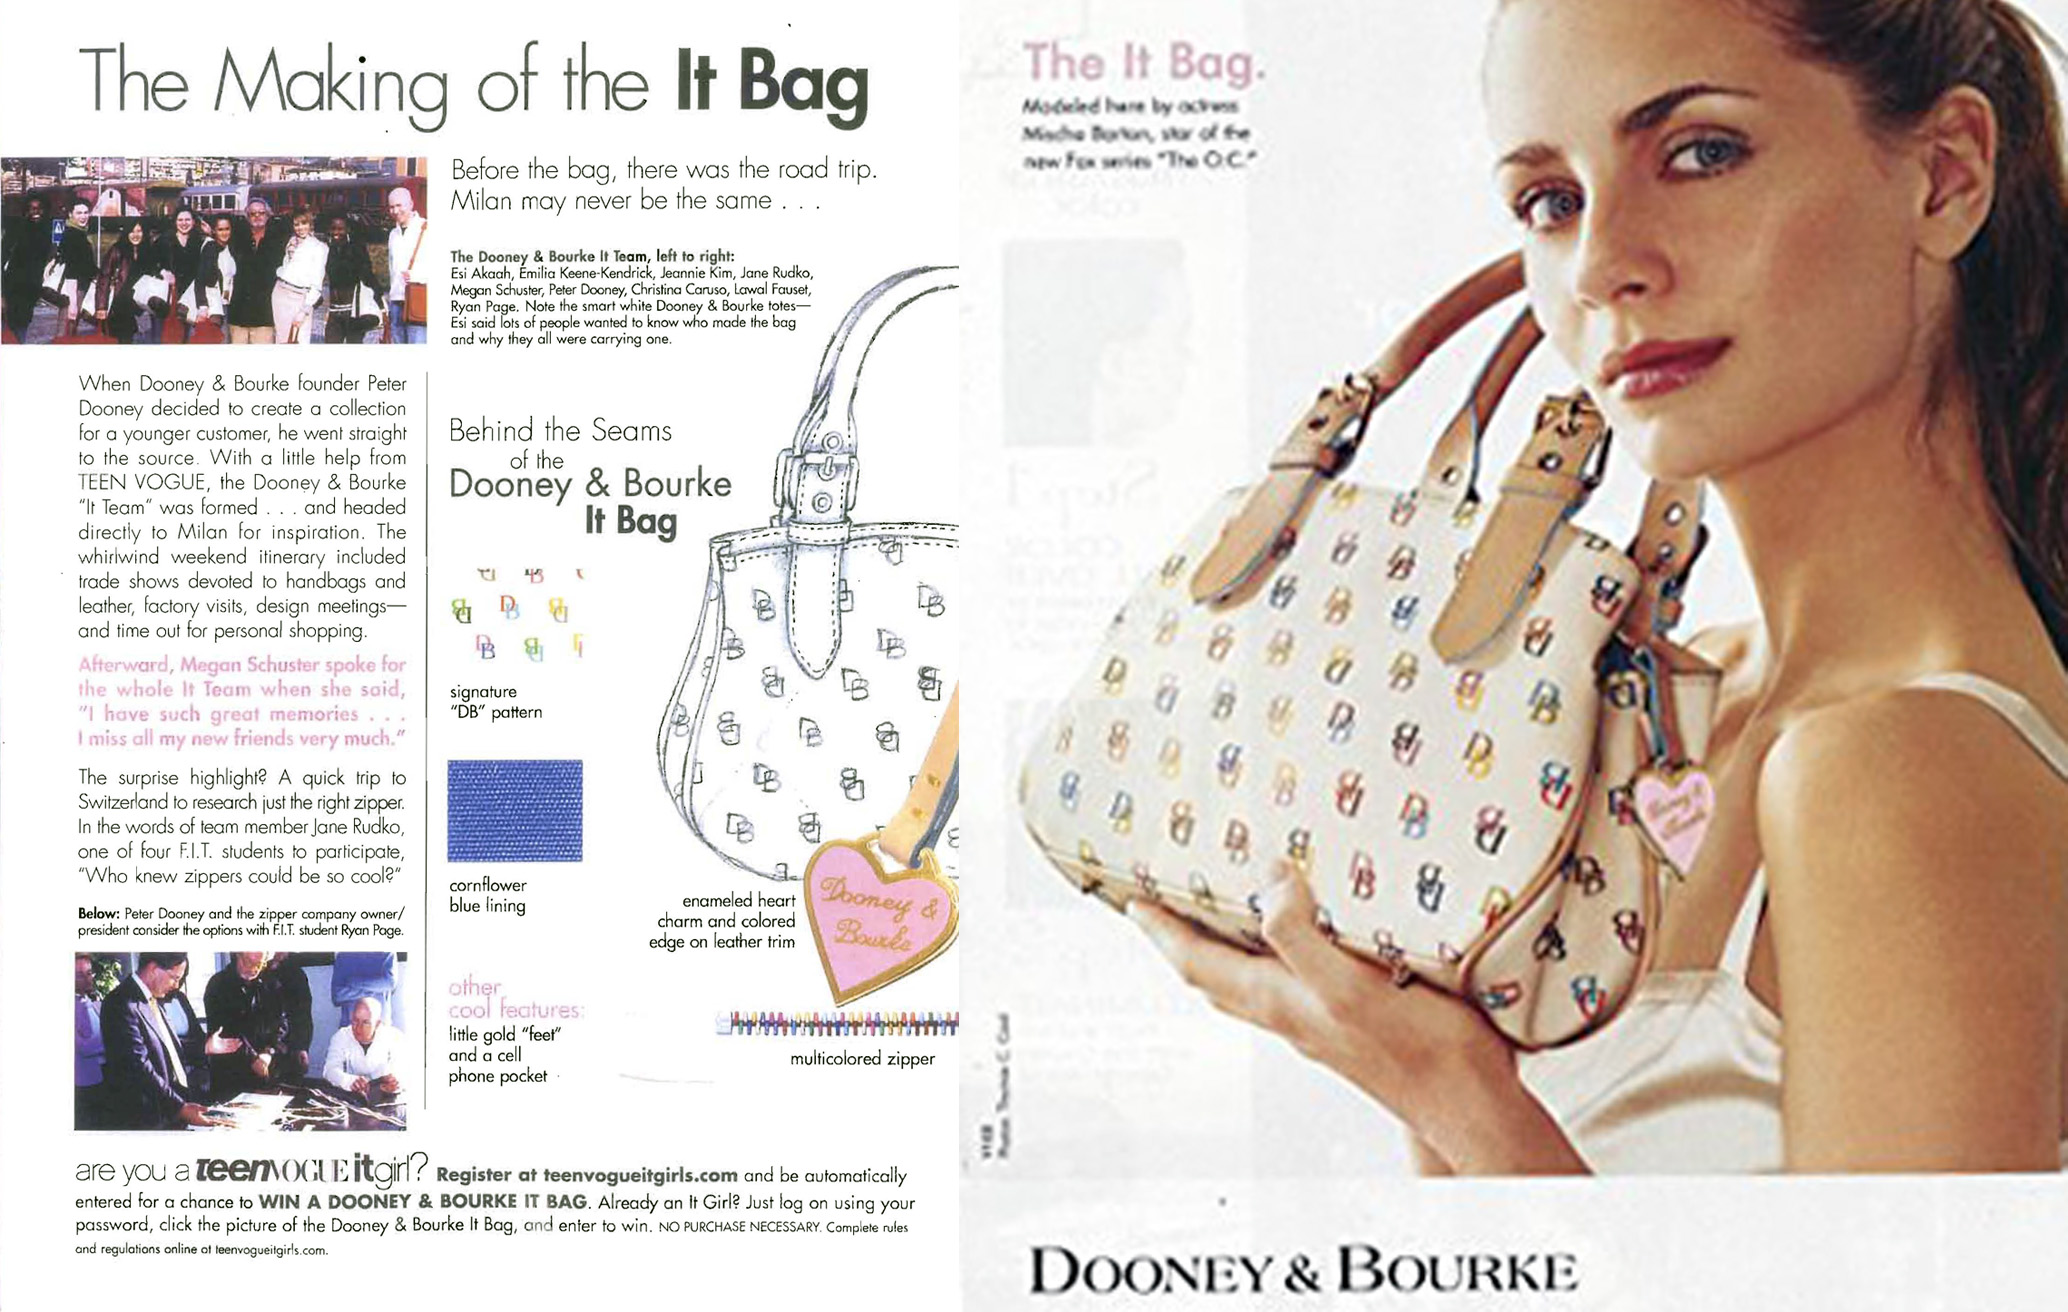 Dooney & Bourke Design Collaboration